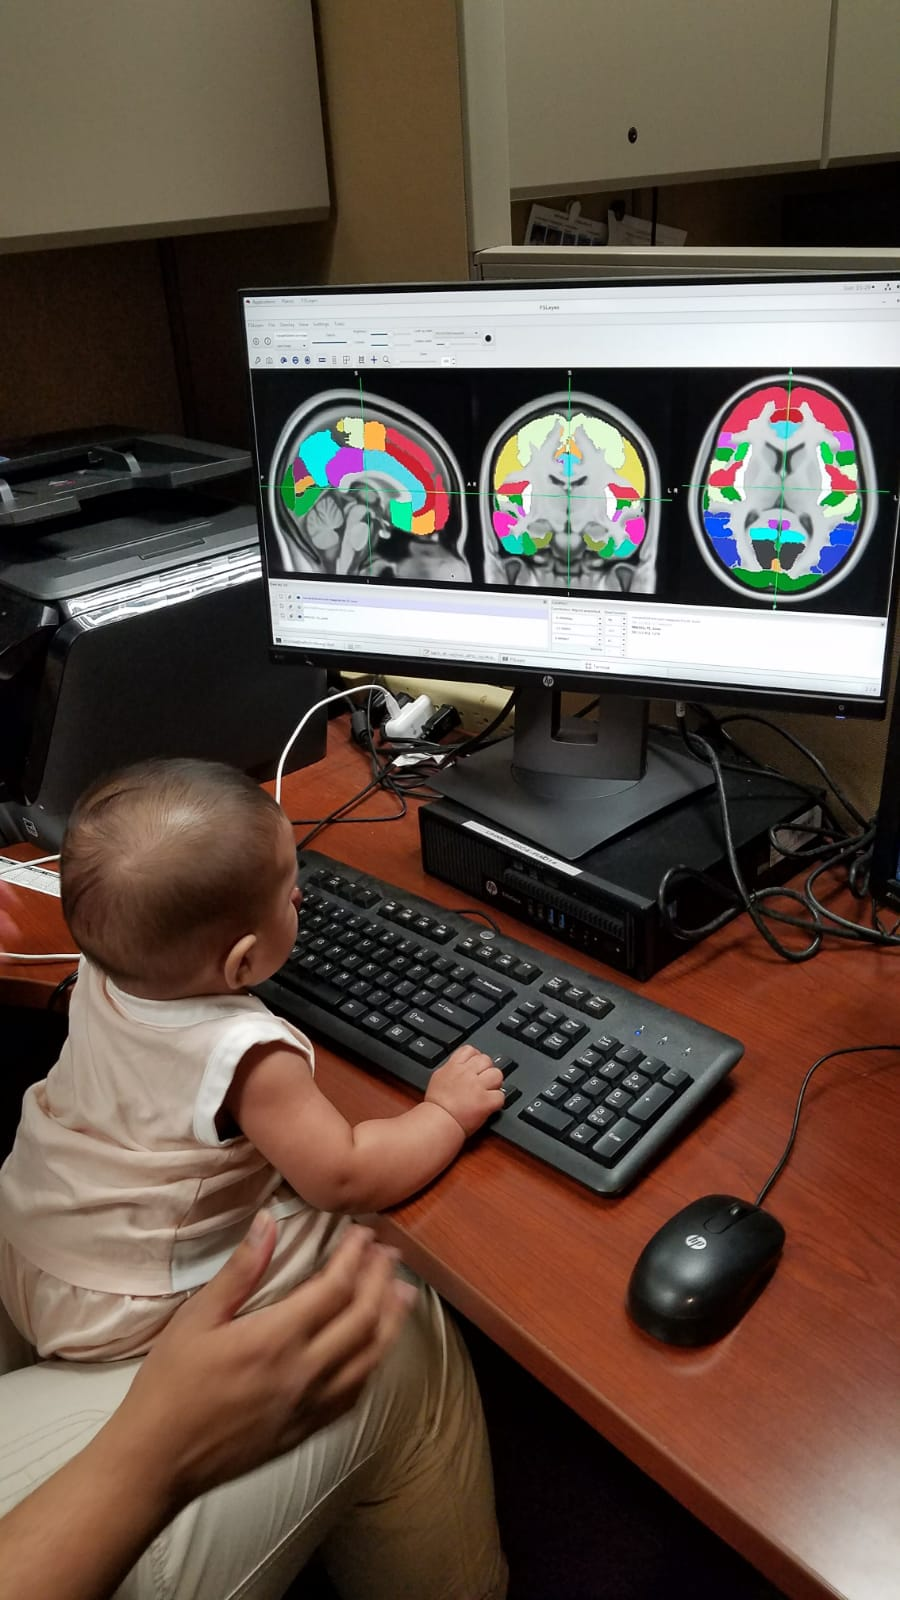 Sindhuja's child is pressing on the computer keys while staring at colorful images of brain scans.